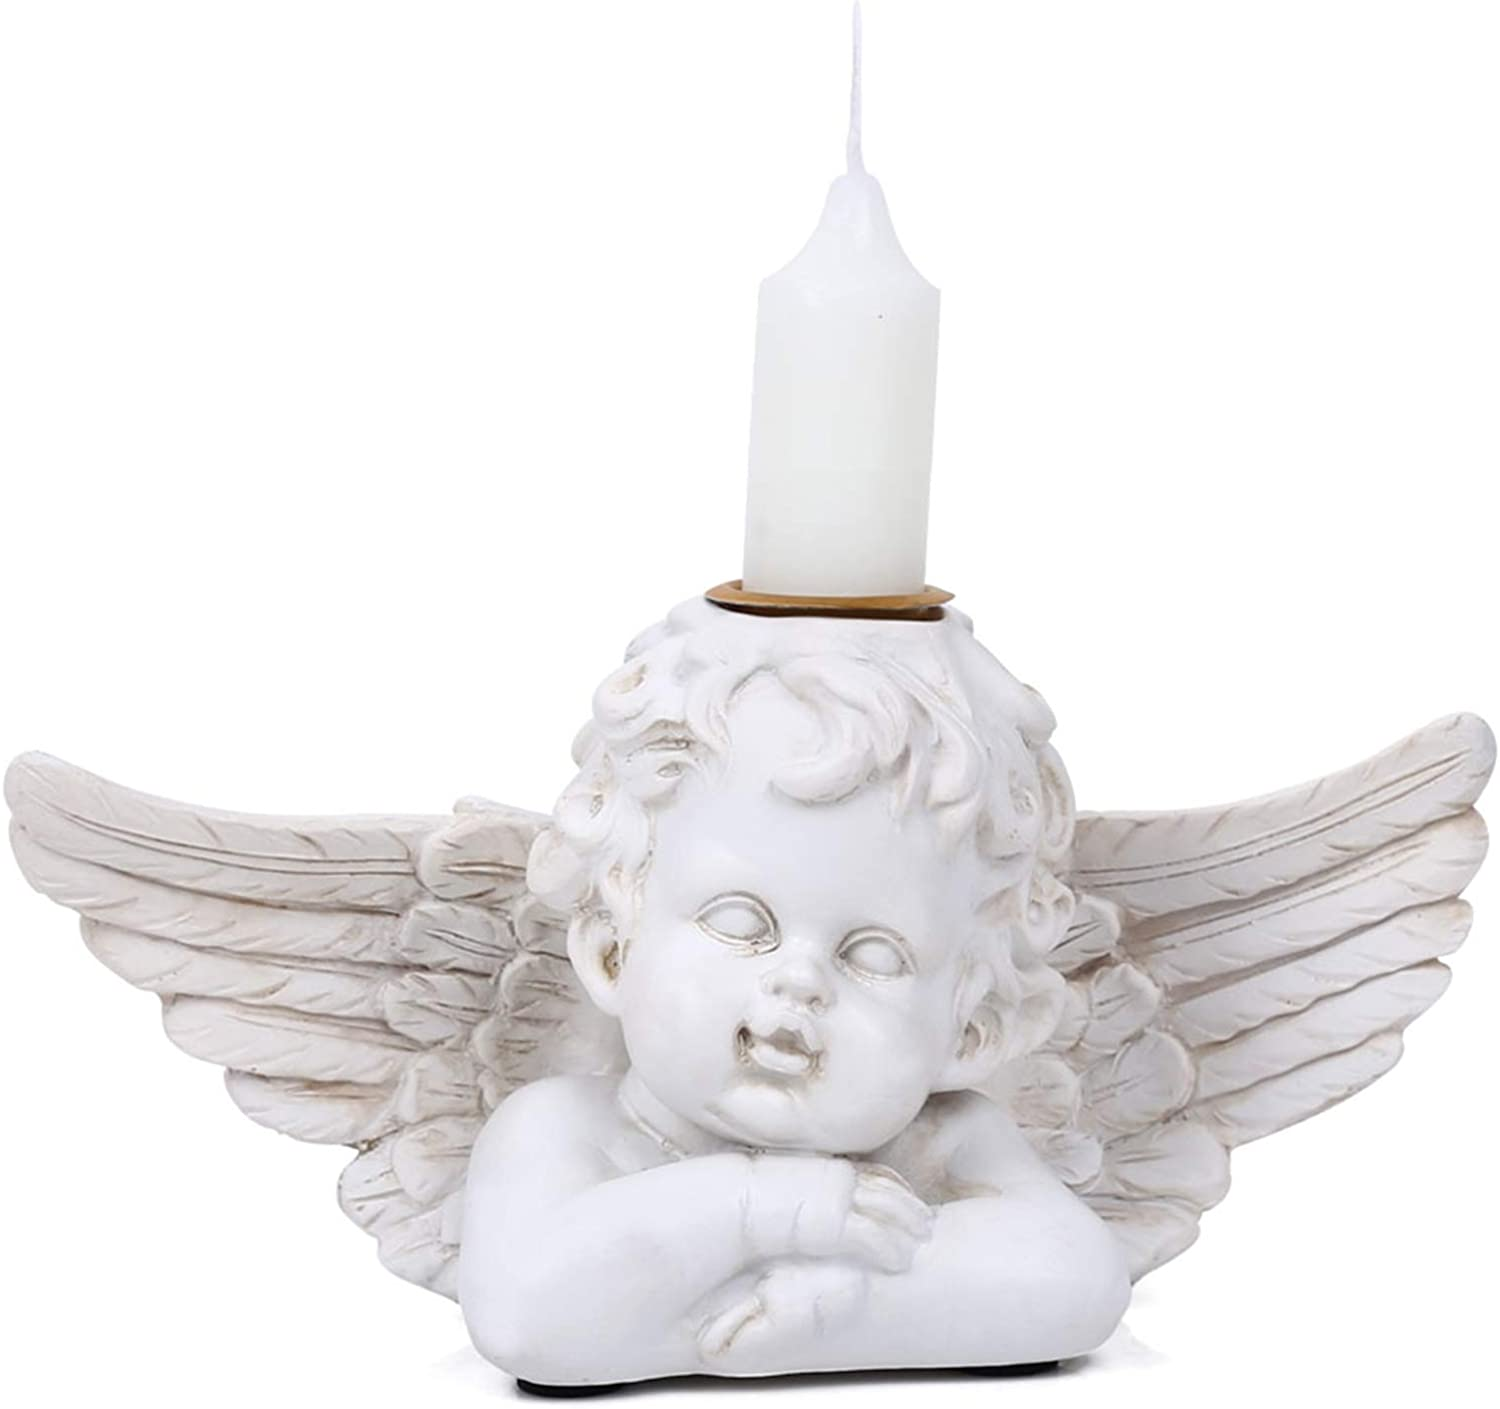 Angel Candle Holders Statue - Decorative Candlesticks Home Figurine Sculpture Table Decor for Fireplace, Living or Dining Room Table, Gifts